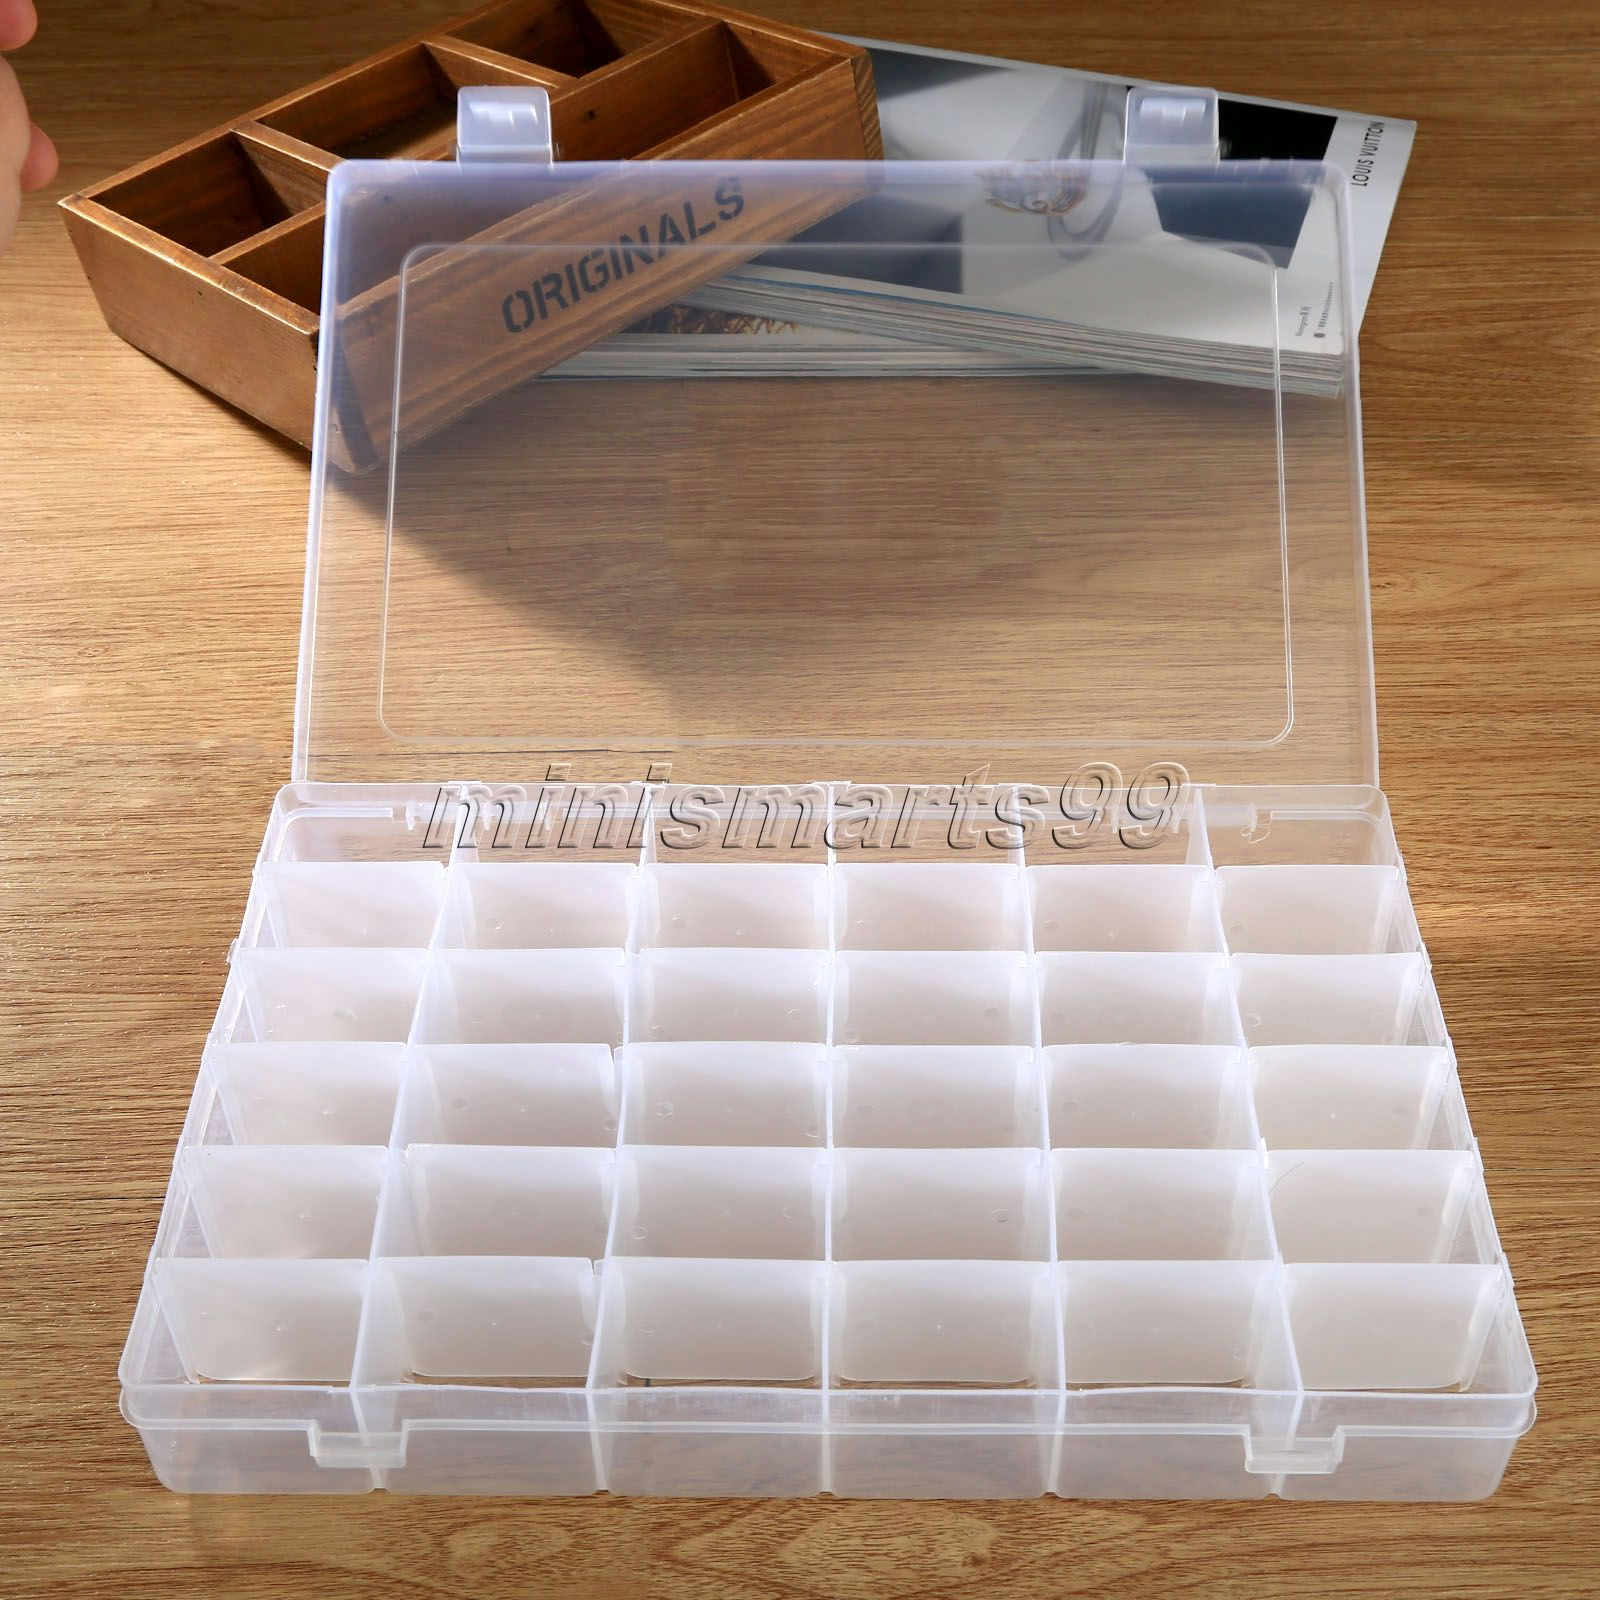 36 Compartment Transpa Adjule Jewelry Box Holder Storage Container Case Rings Earrings Display Organizer 27x17x4 2cm In Bo Bins From